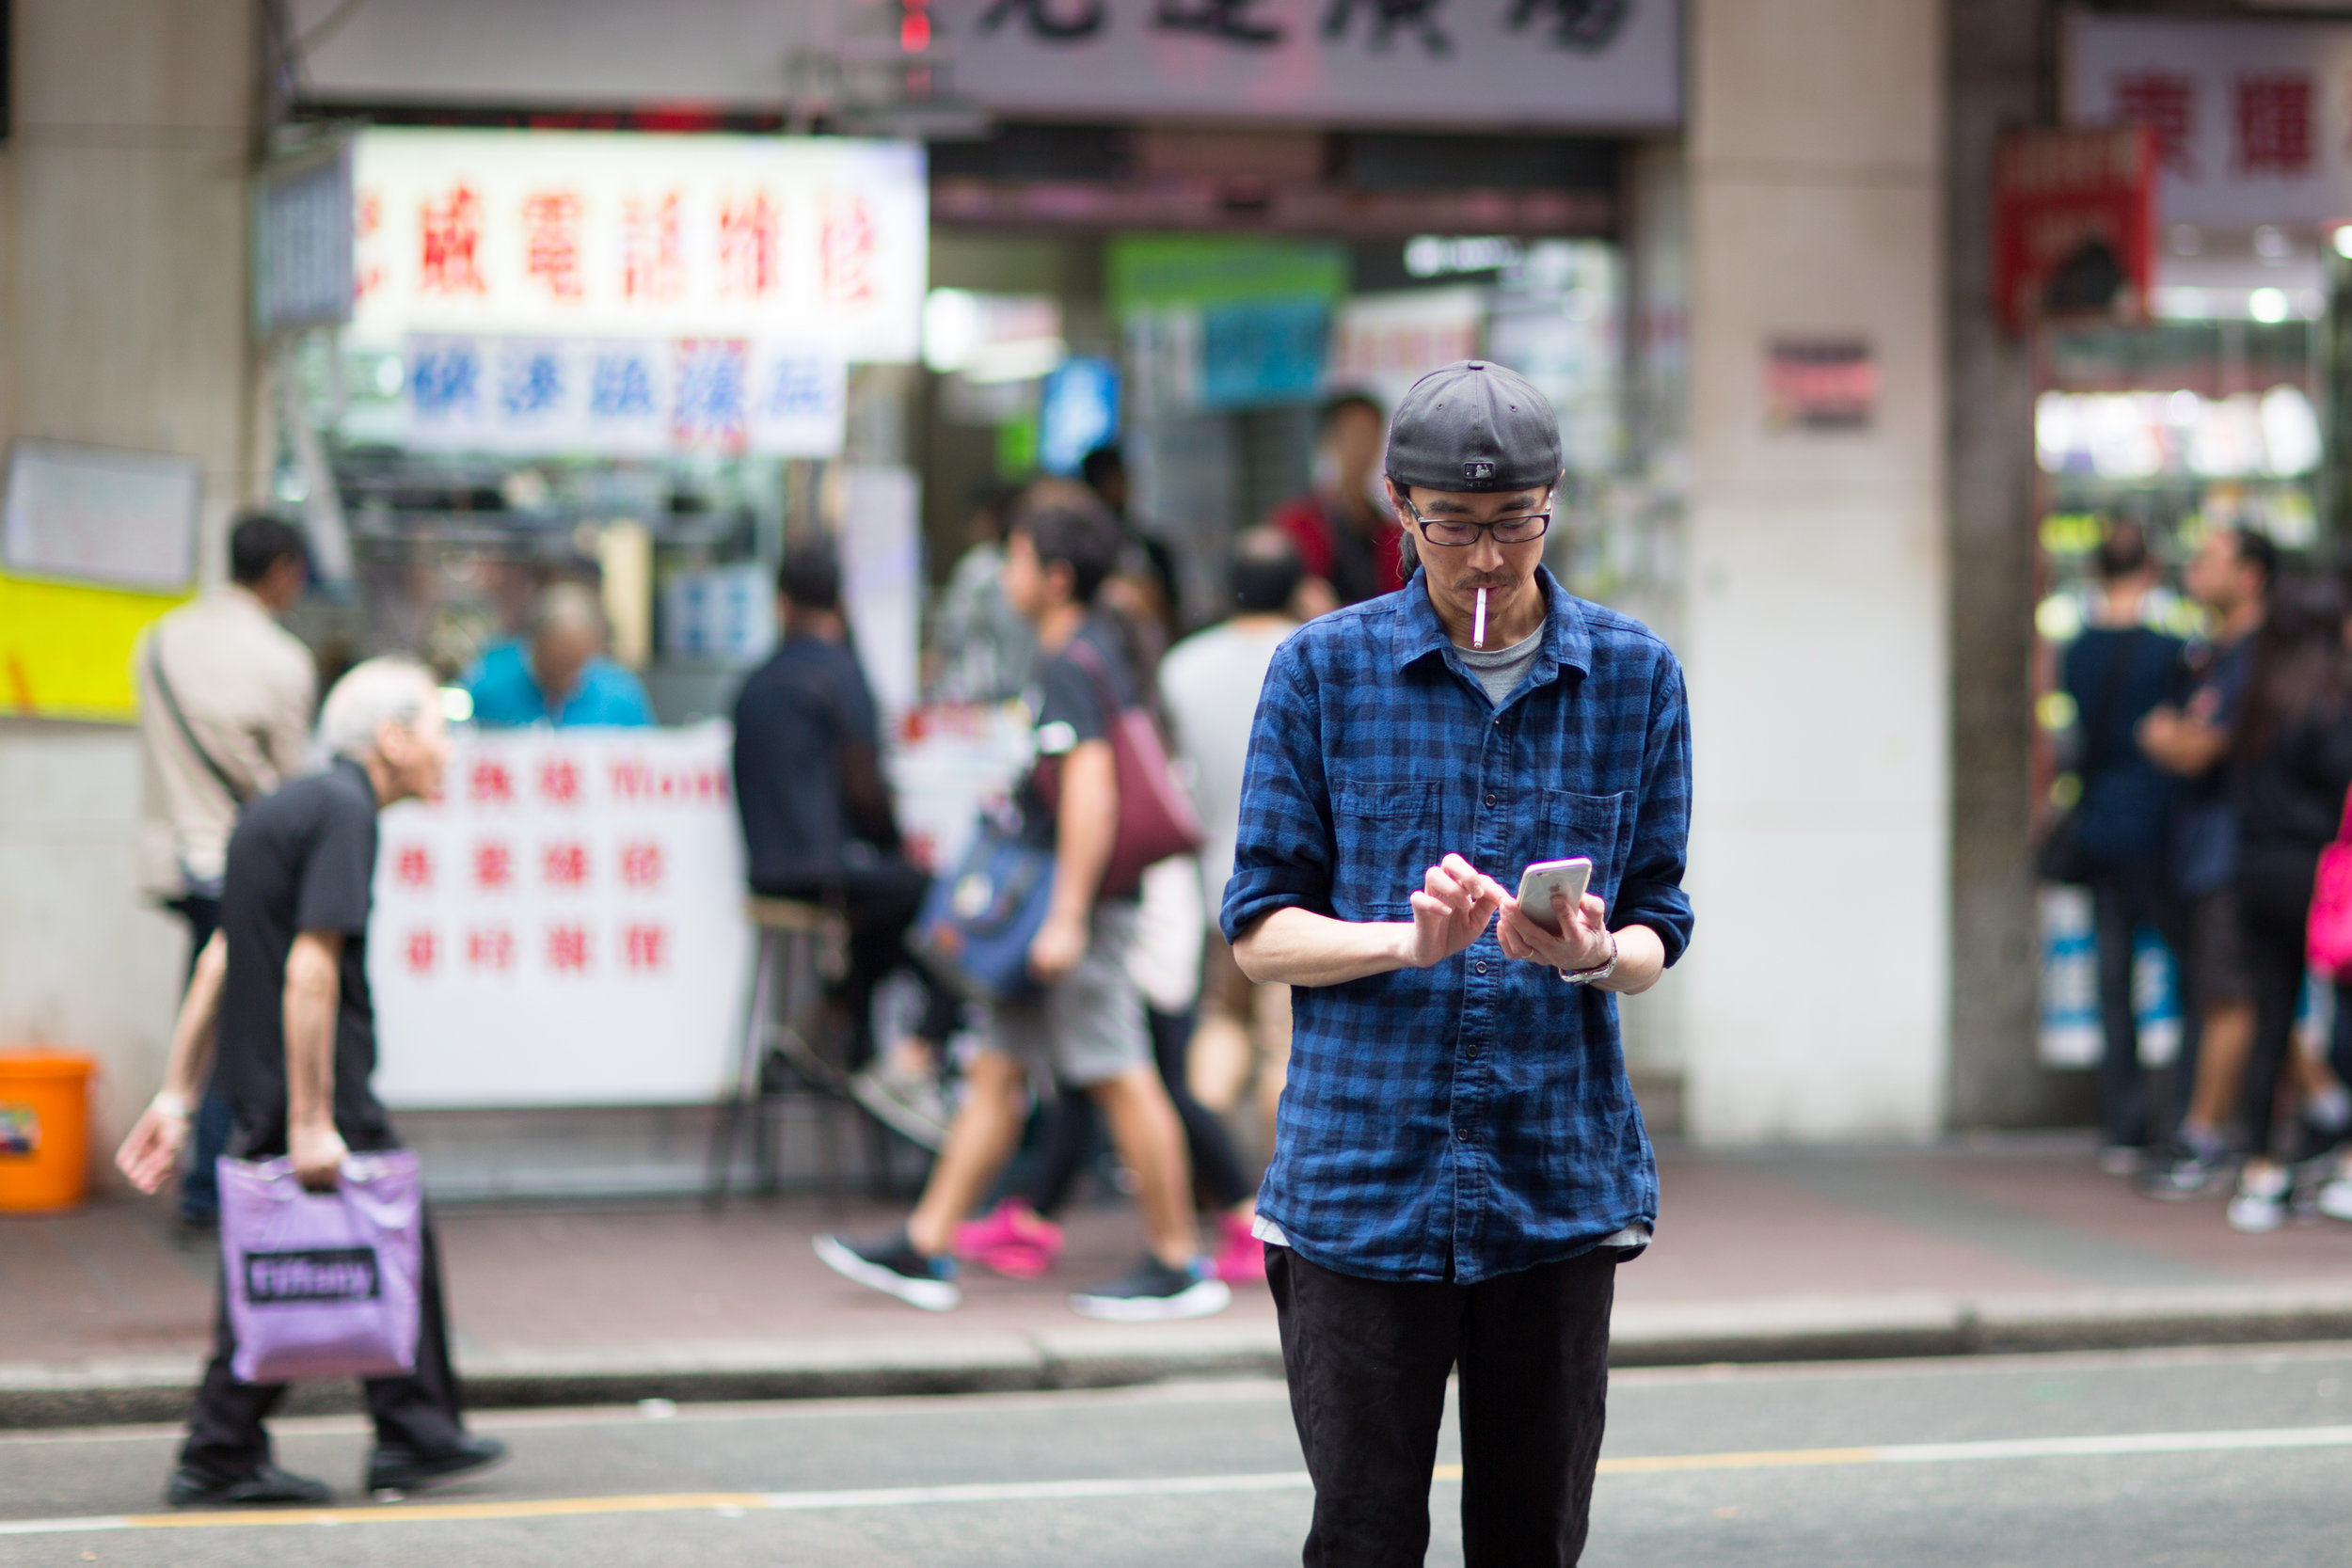 A man is surfing or texting on his mobile phone in Mongkok Hong Kong